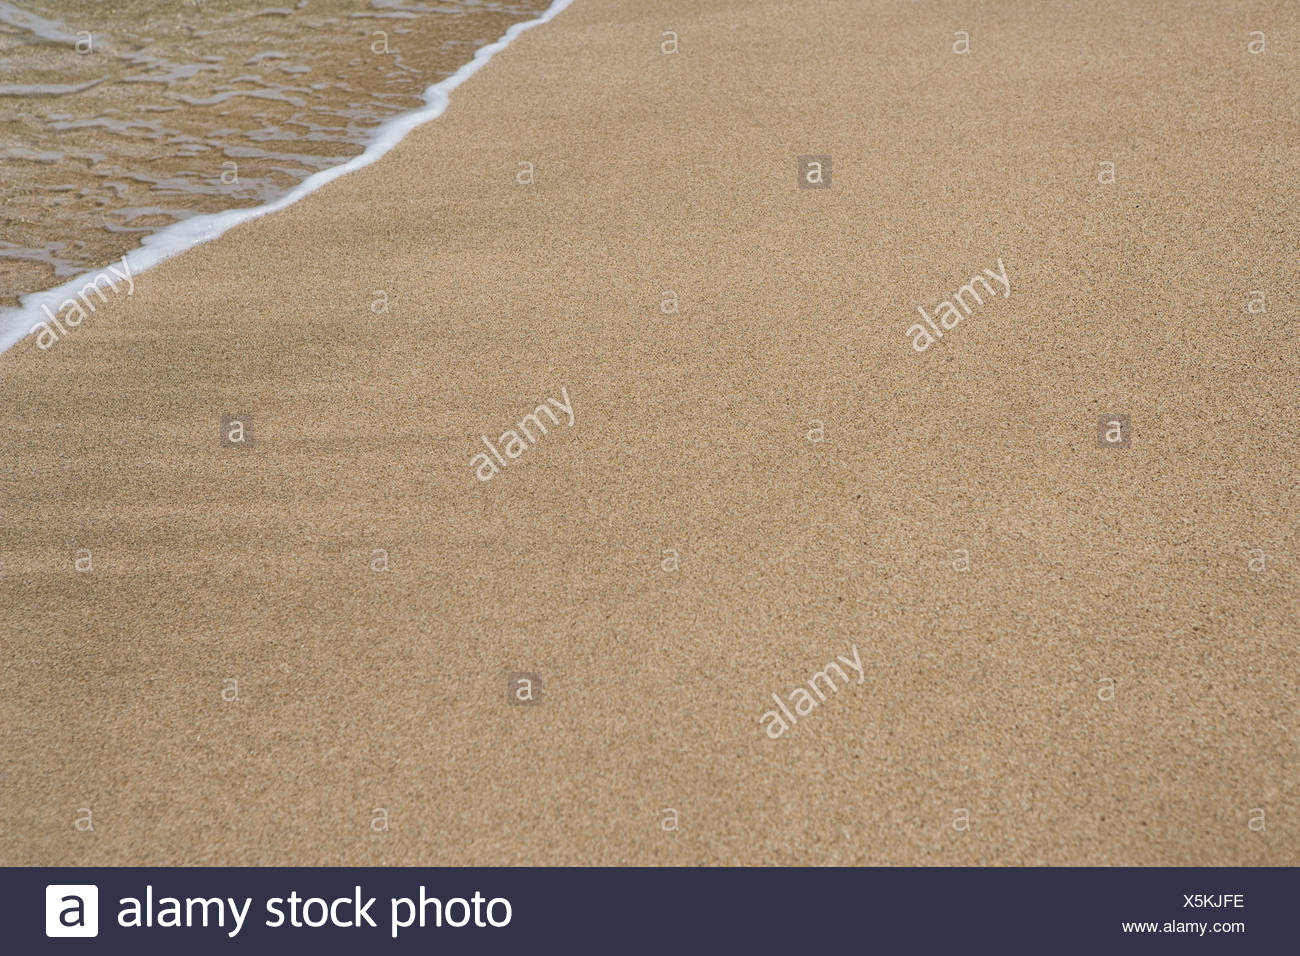 Surf on sand, Kauai, Hawaii - Stock Image